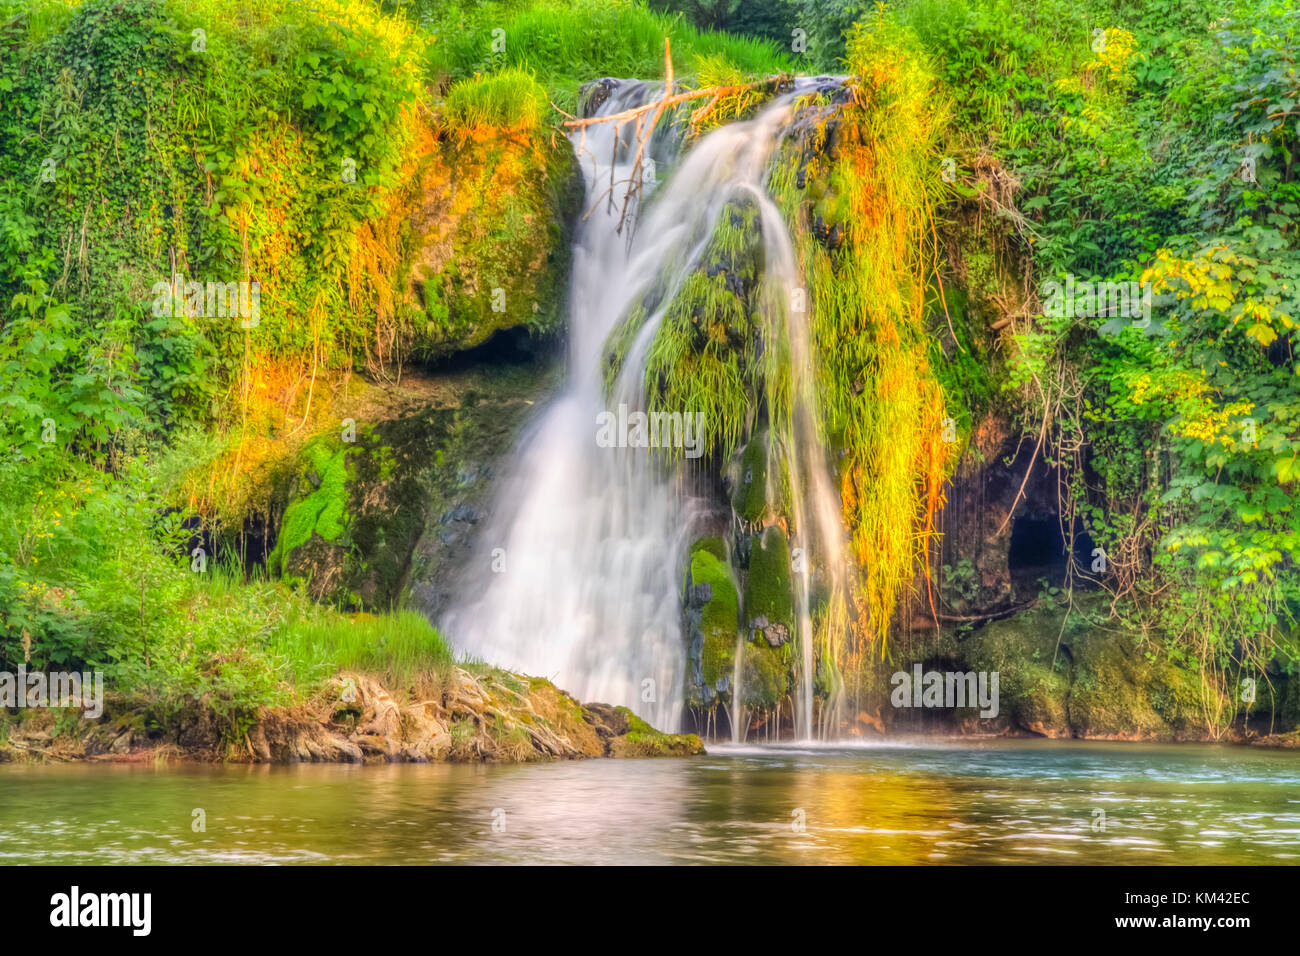 HDR longtime exposure of waterfall - Stock Image